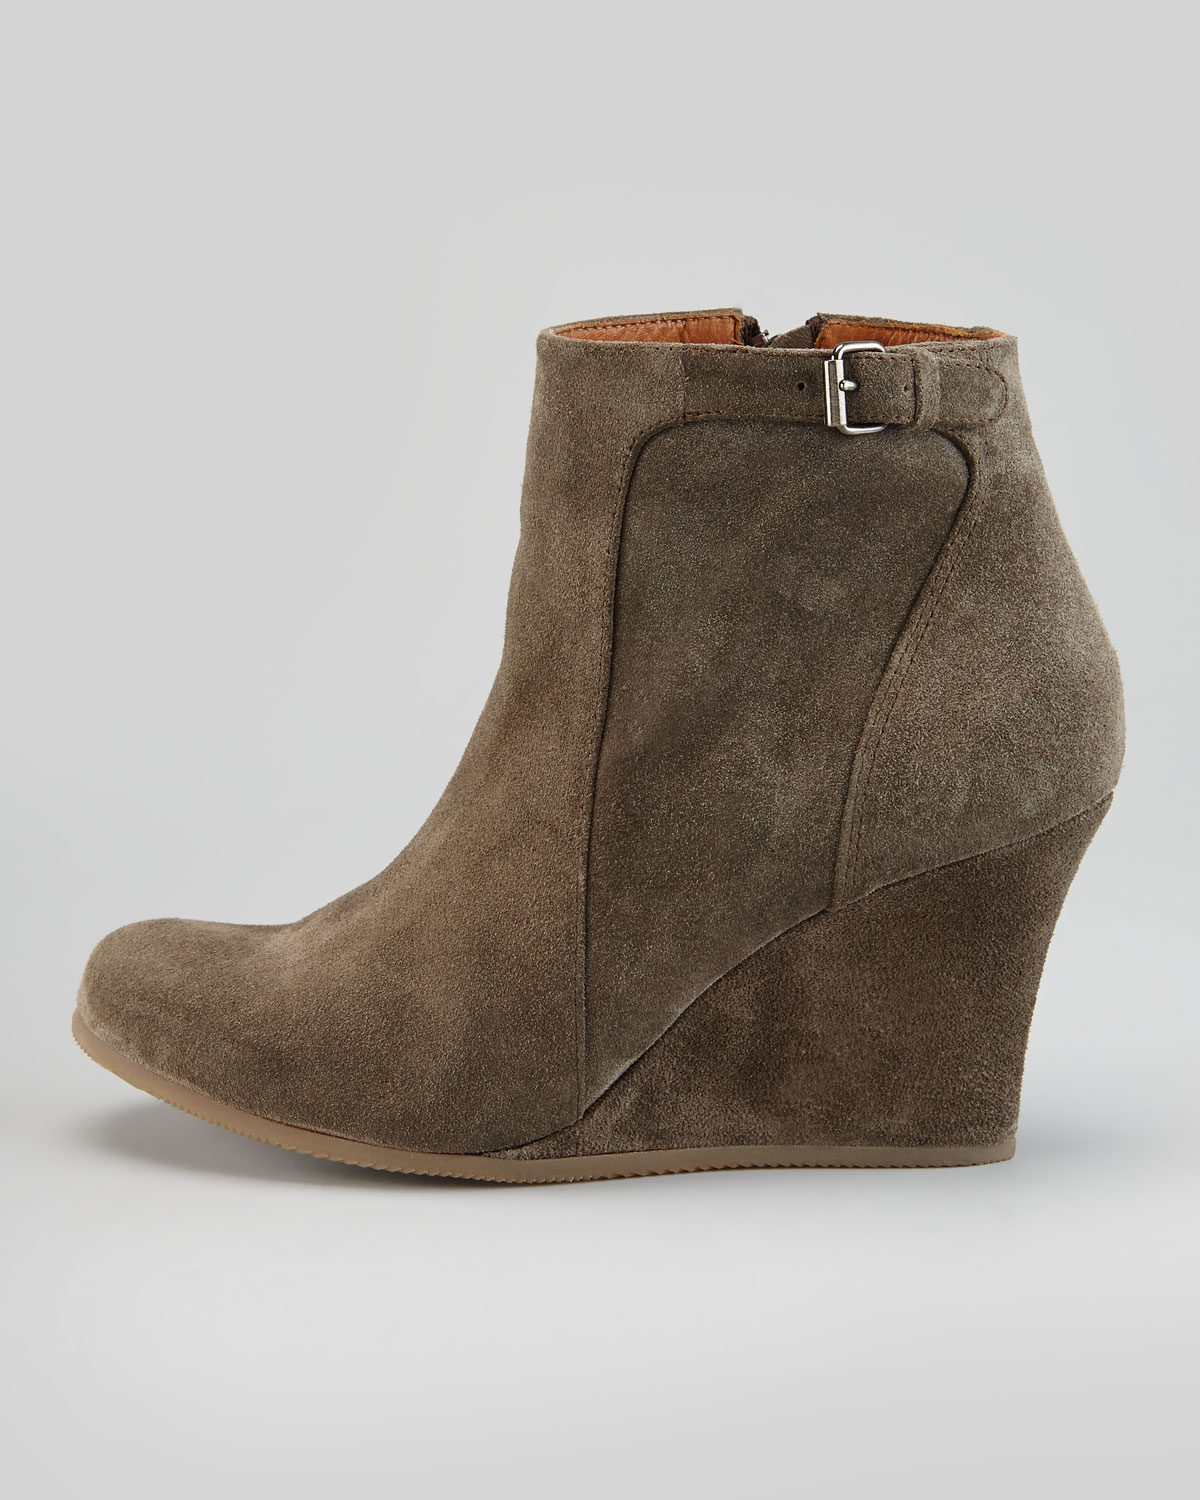 Lanvin Suede Wedge Ankle Boot Gray in Gray | Lyst